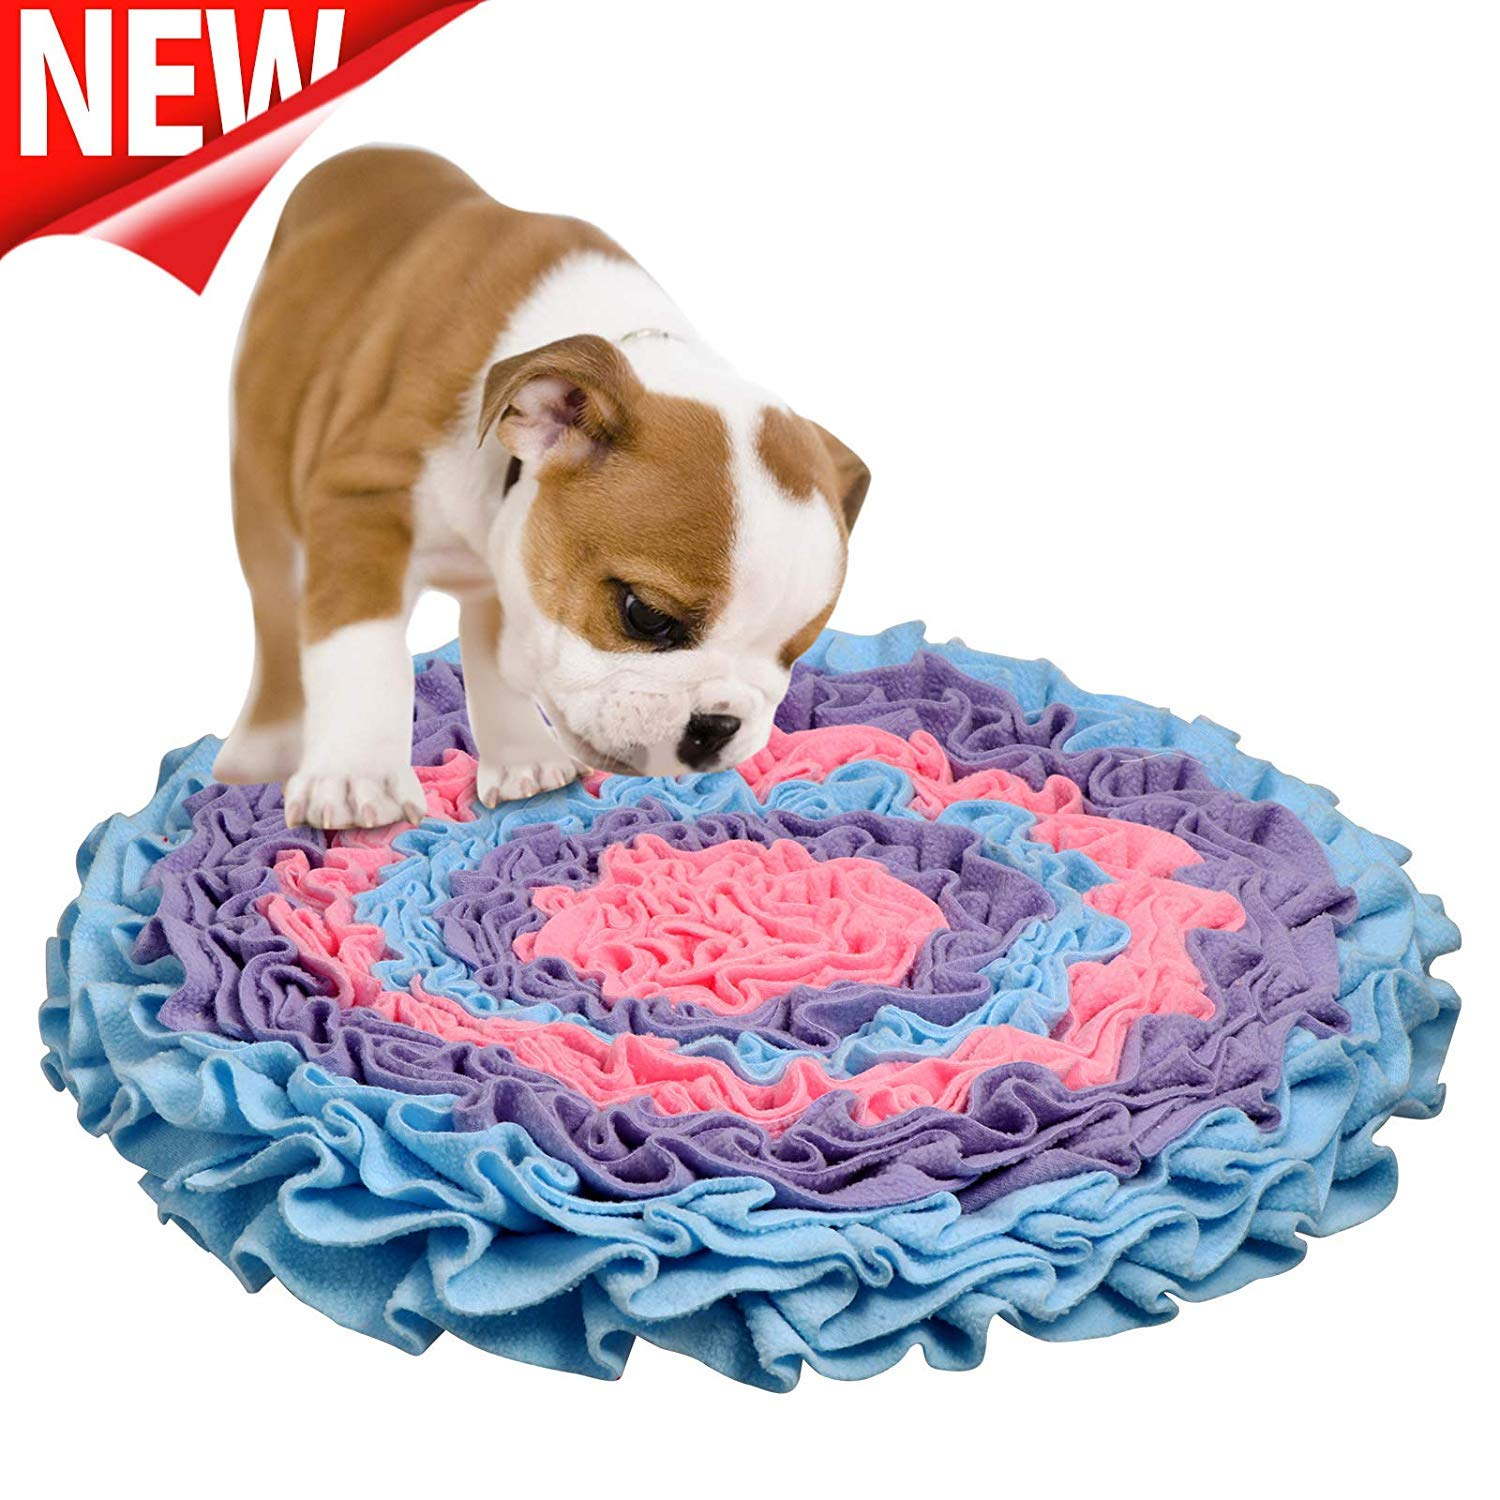 CPPK Snuffle Mat for Dogs, Dog Feeding Mat, Dog Puzzle Enrichment Toys, Nosework Slow Feeding Training, Encourages Natural Foraging Skills, Perfect for Any Breed Stress Relief,Bluepurple